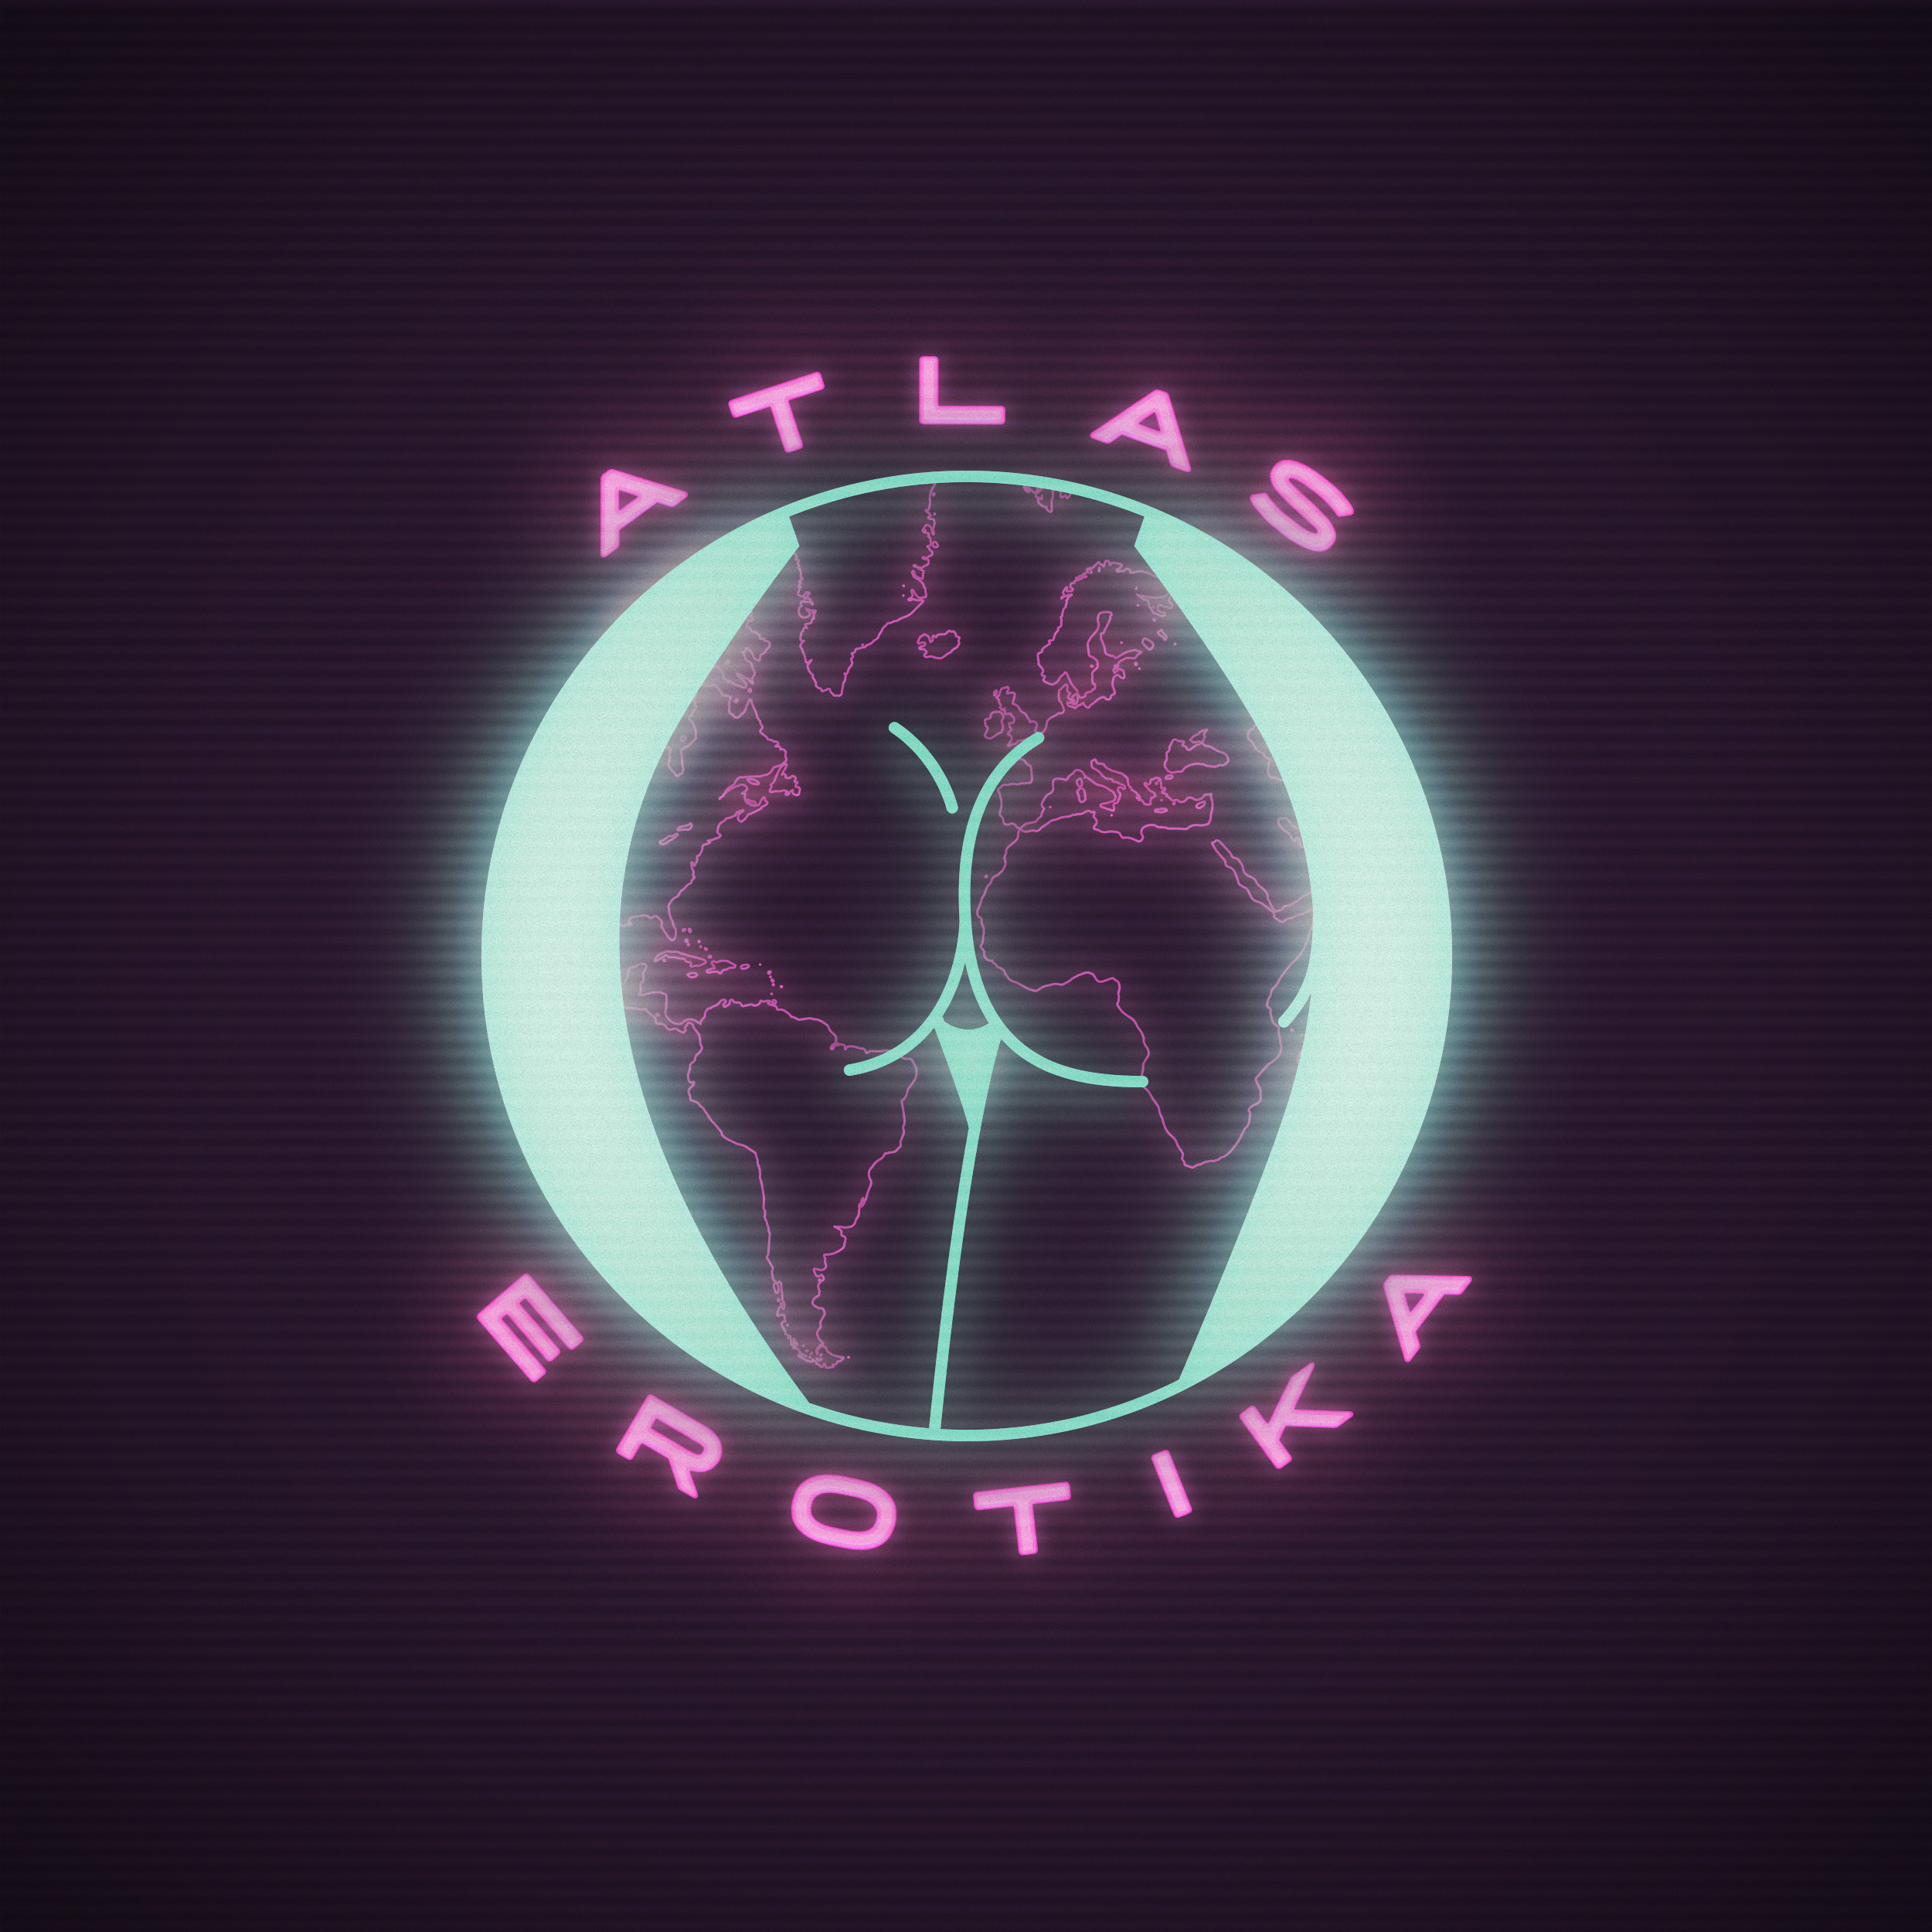 atlas_erotika_net_2500x2500 copy.jpg